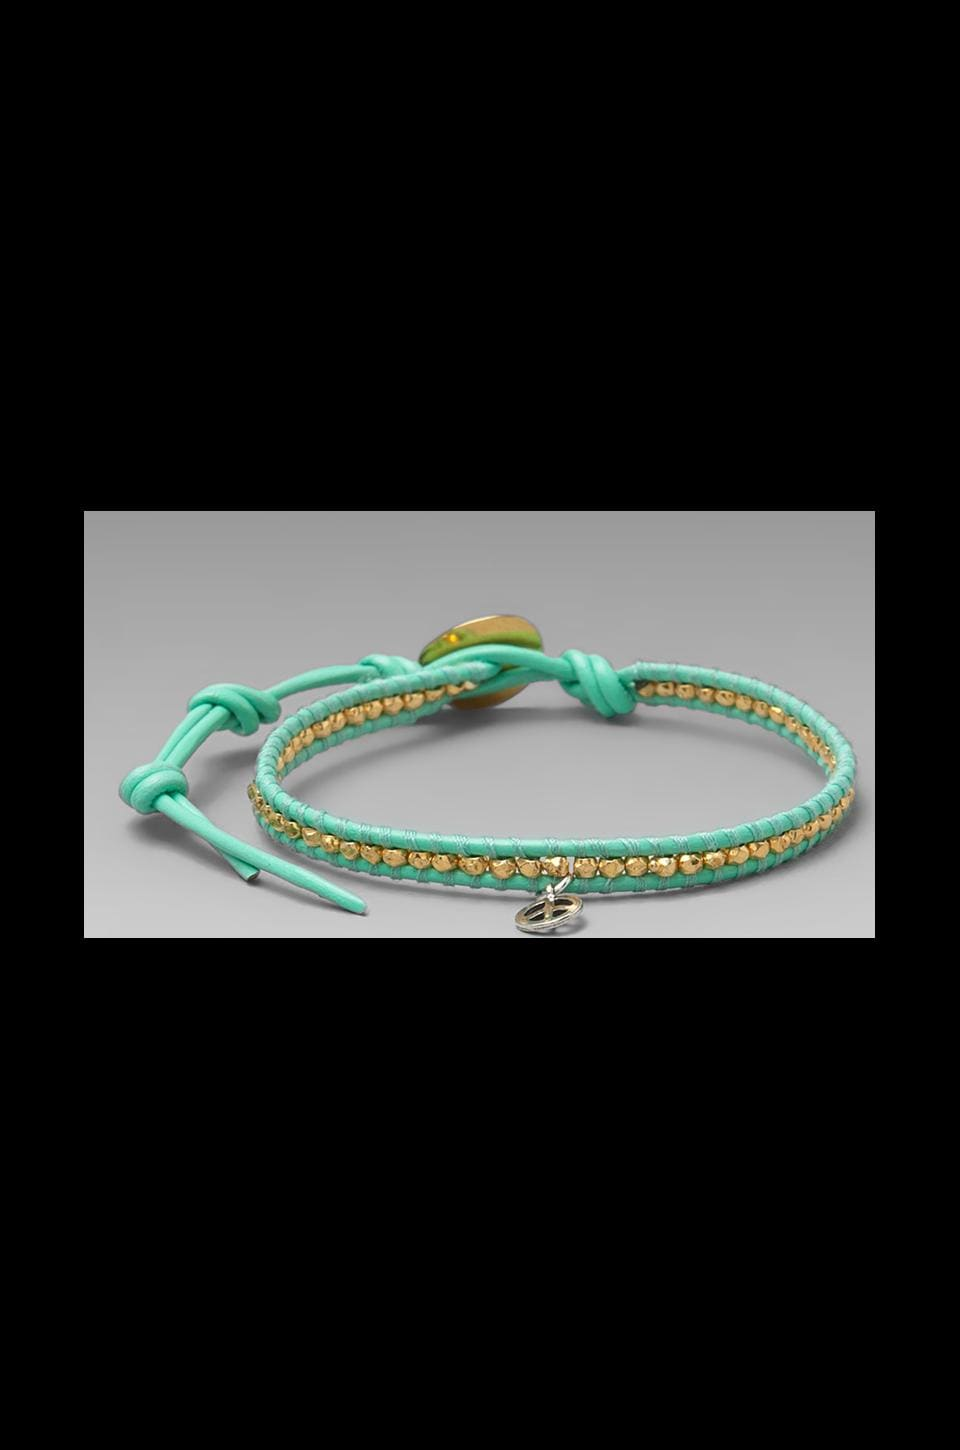 CHAN LUU Peace Bracelet in Yellow Gold/Mint